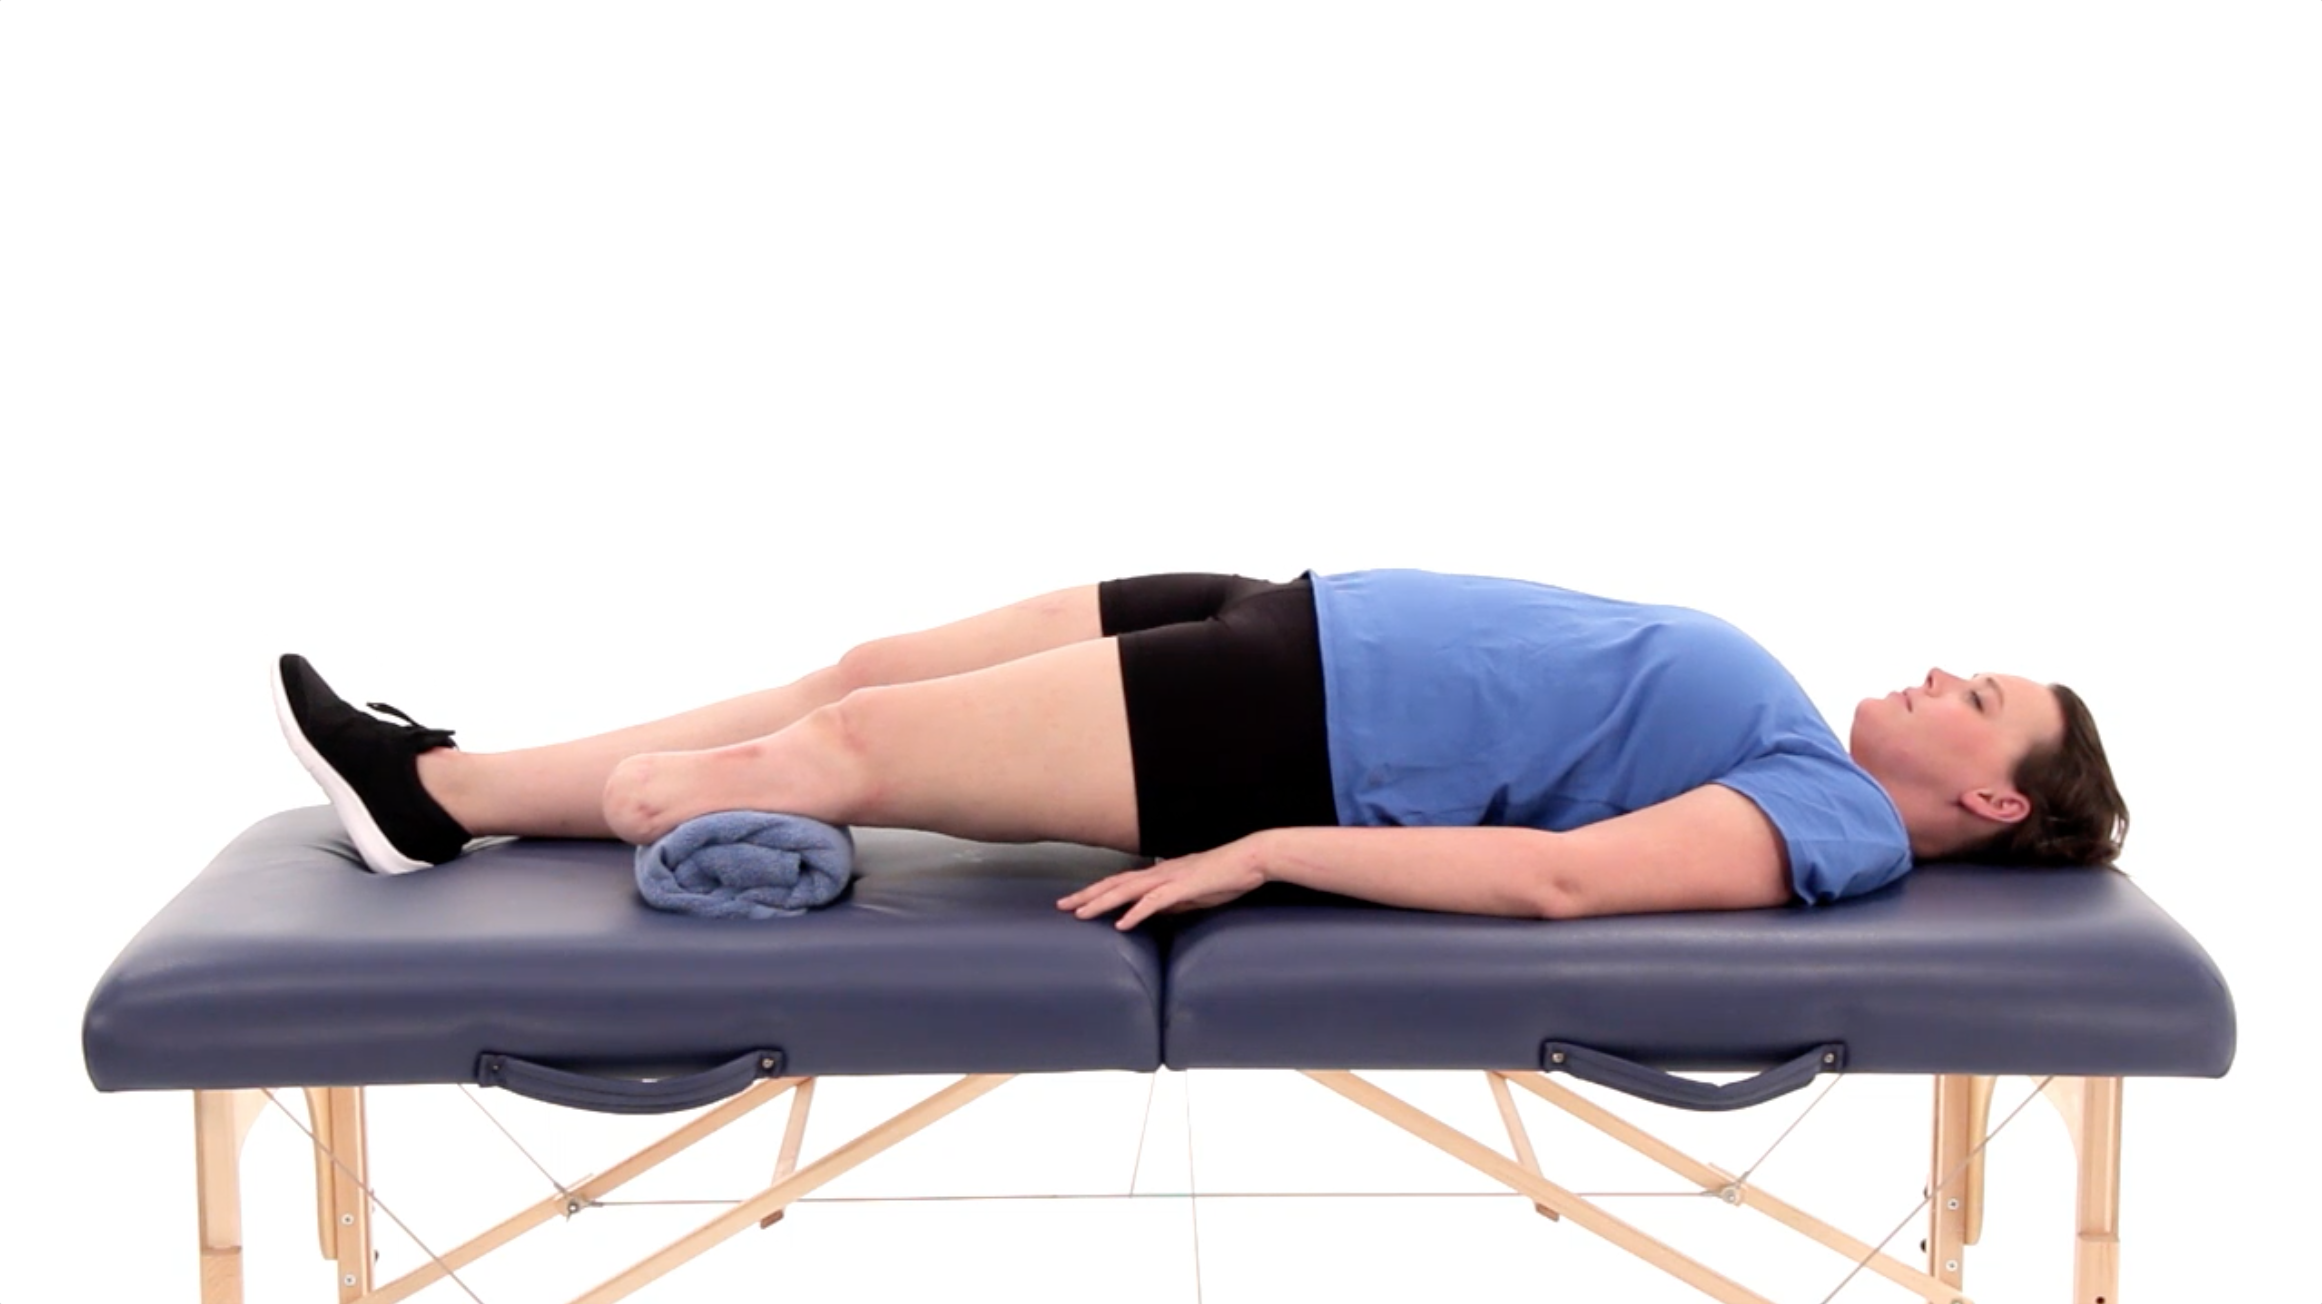 surgical supine bench - HD2322×1304